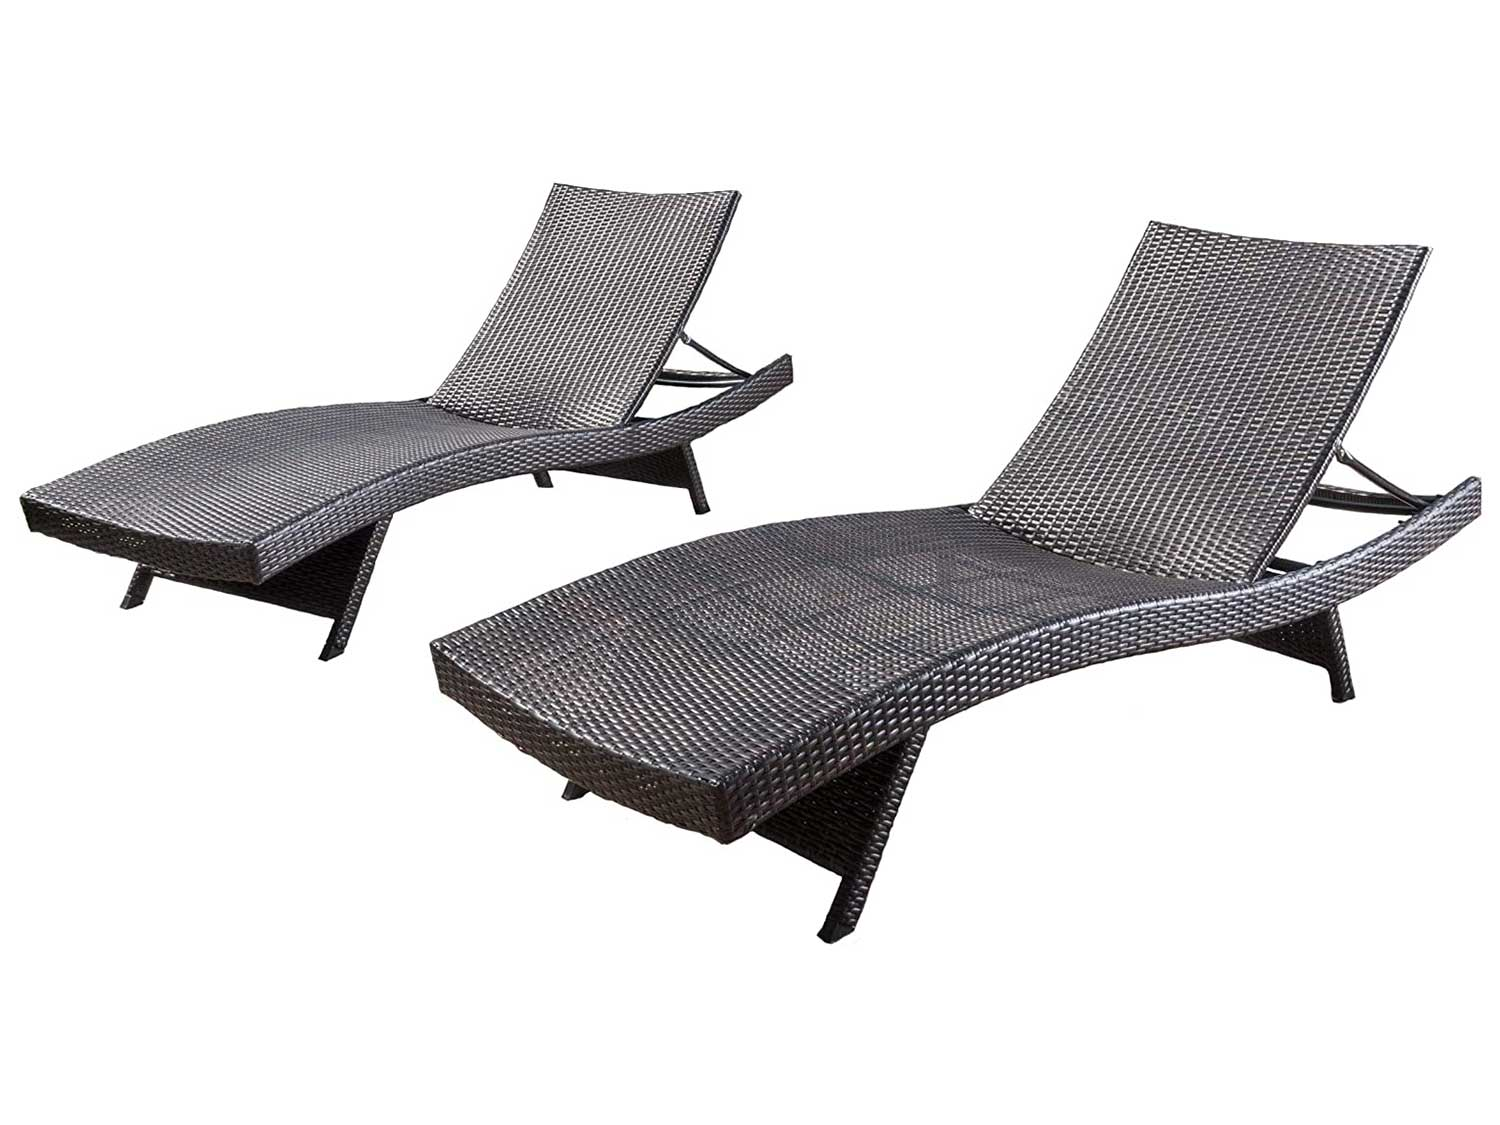 Christopher Knight Home Salem Outdoor Wicker Chaise Lounge Chairs, Brown - Set of 2